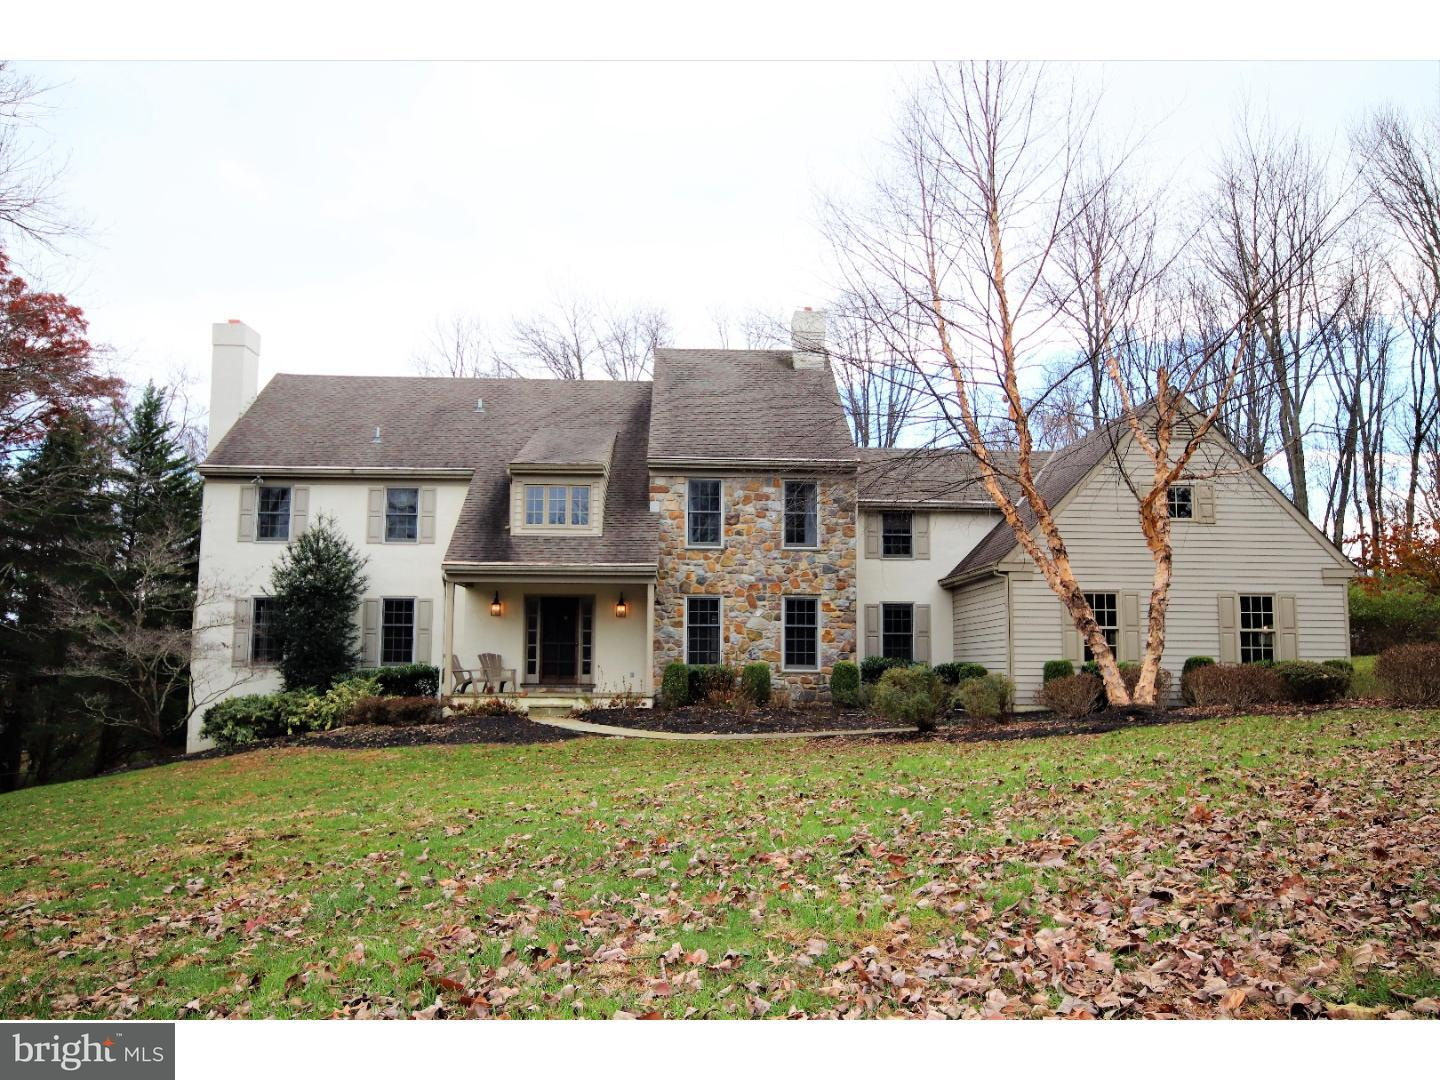 41 OLD COVERED BRIDGE RD, NEWTOWN SQUARE - Listed at $935,000, NEWTOWN SQUARE